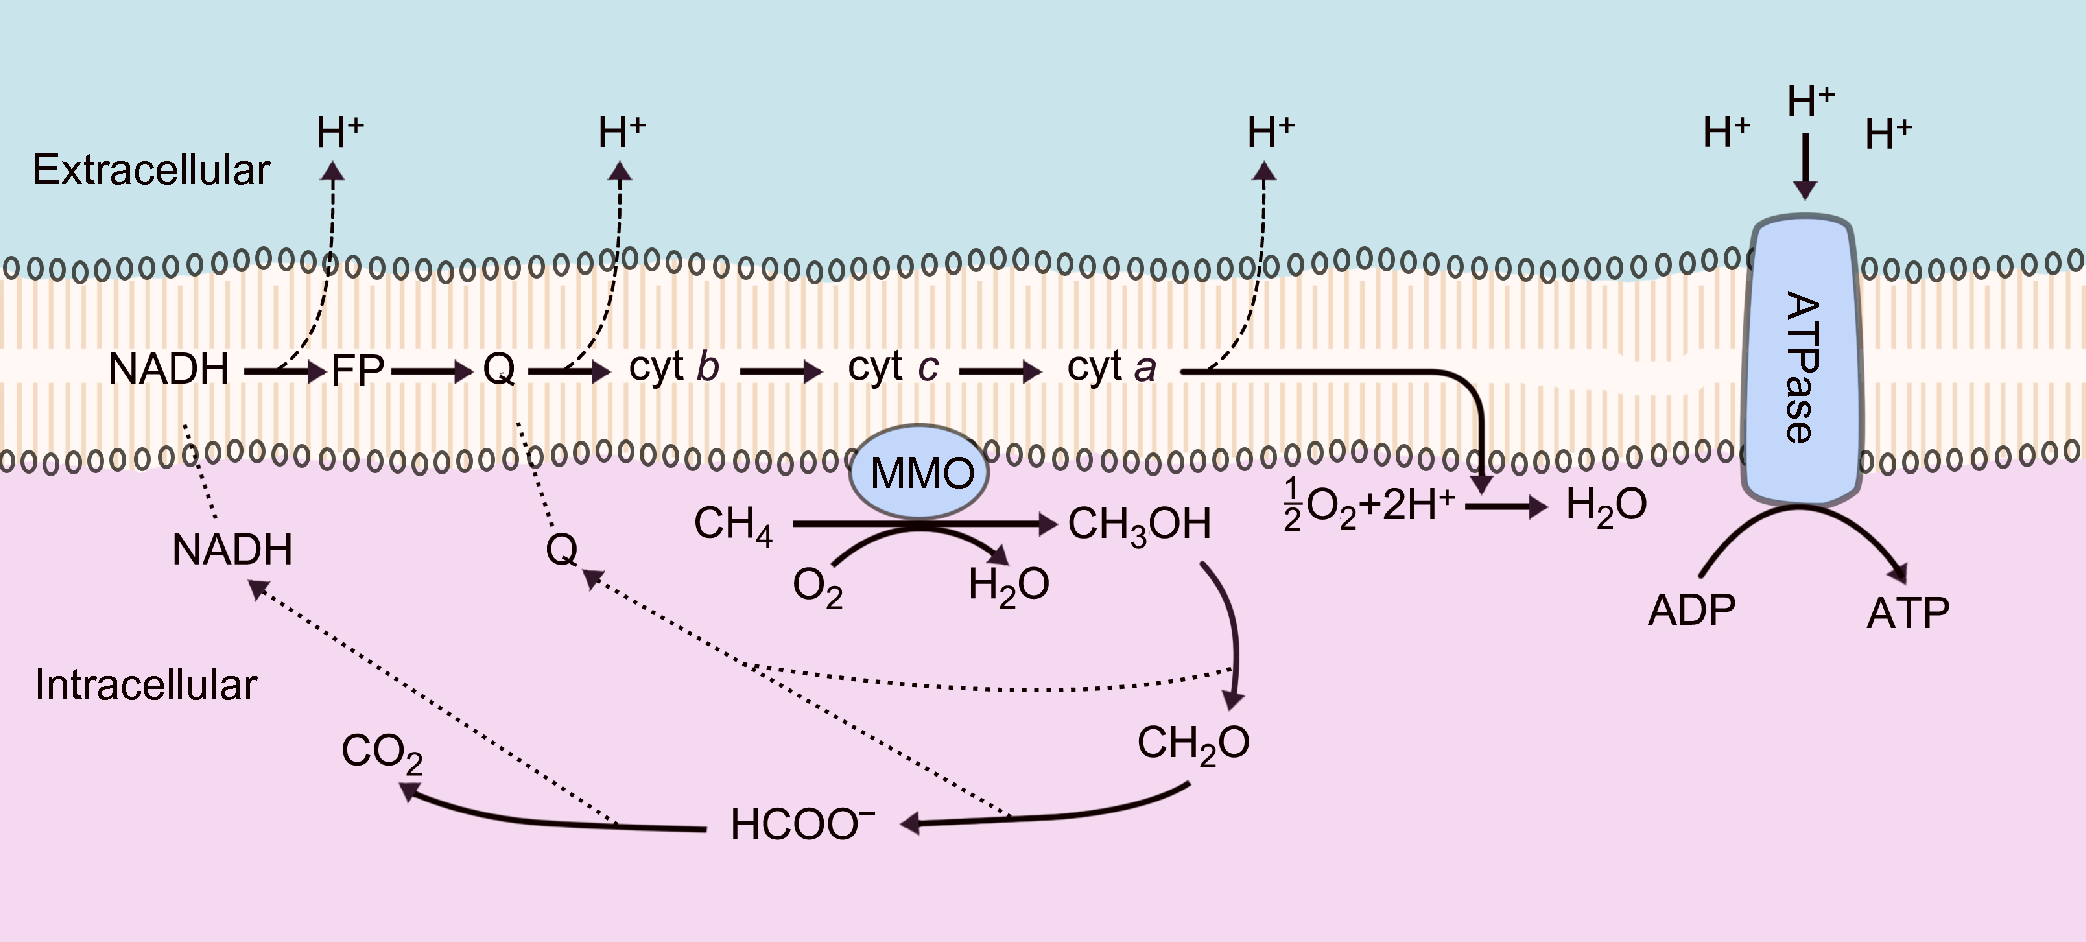 Methane biotransformation in the ocean and its effects on climate